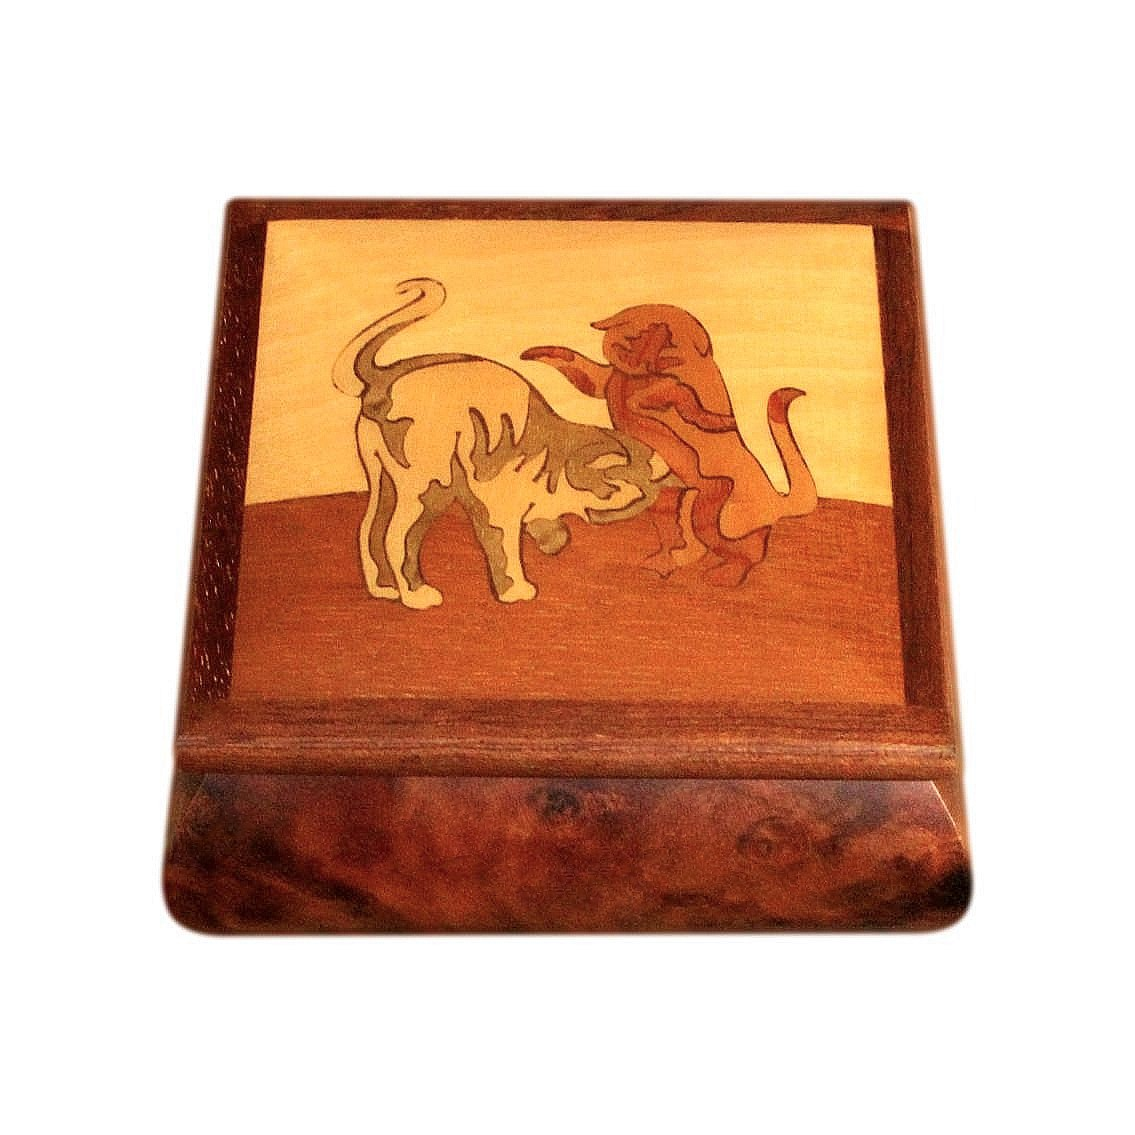 Vintage Sorrento Jewellery Box With Marquetry Inlaid Cats